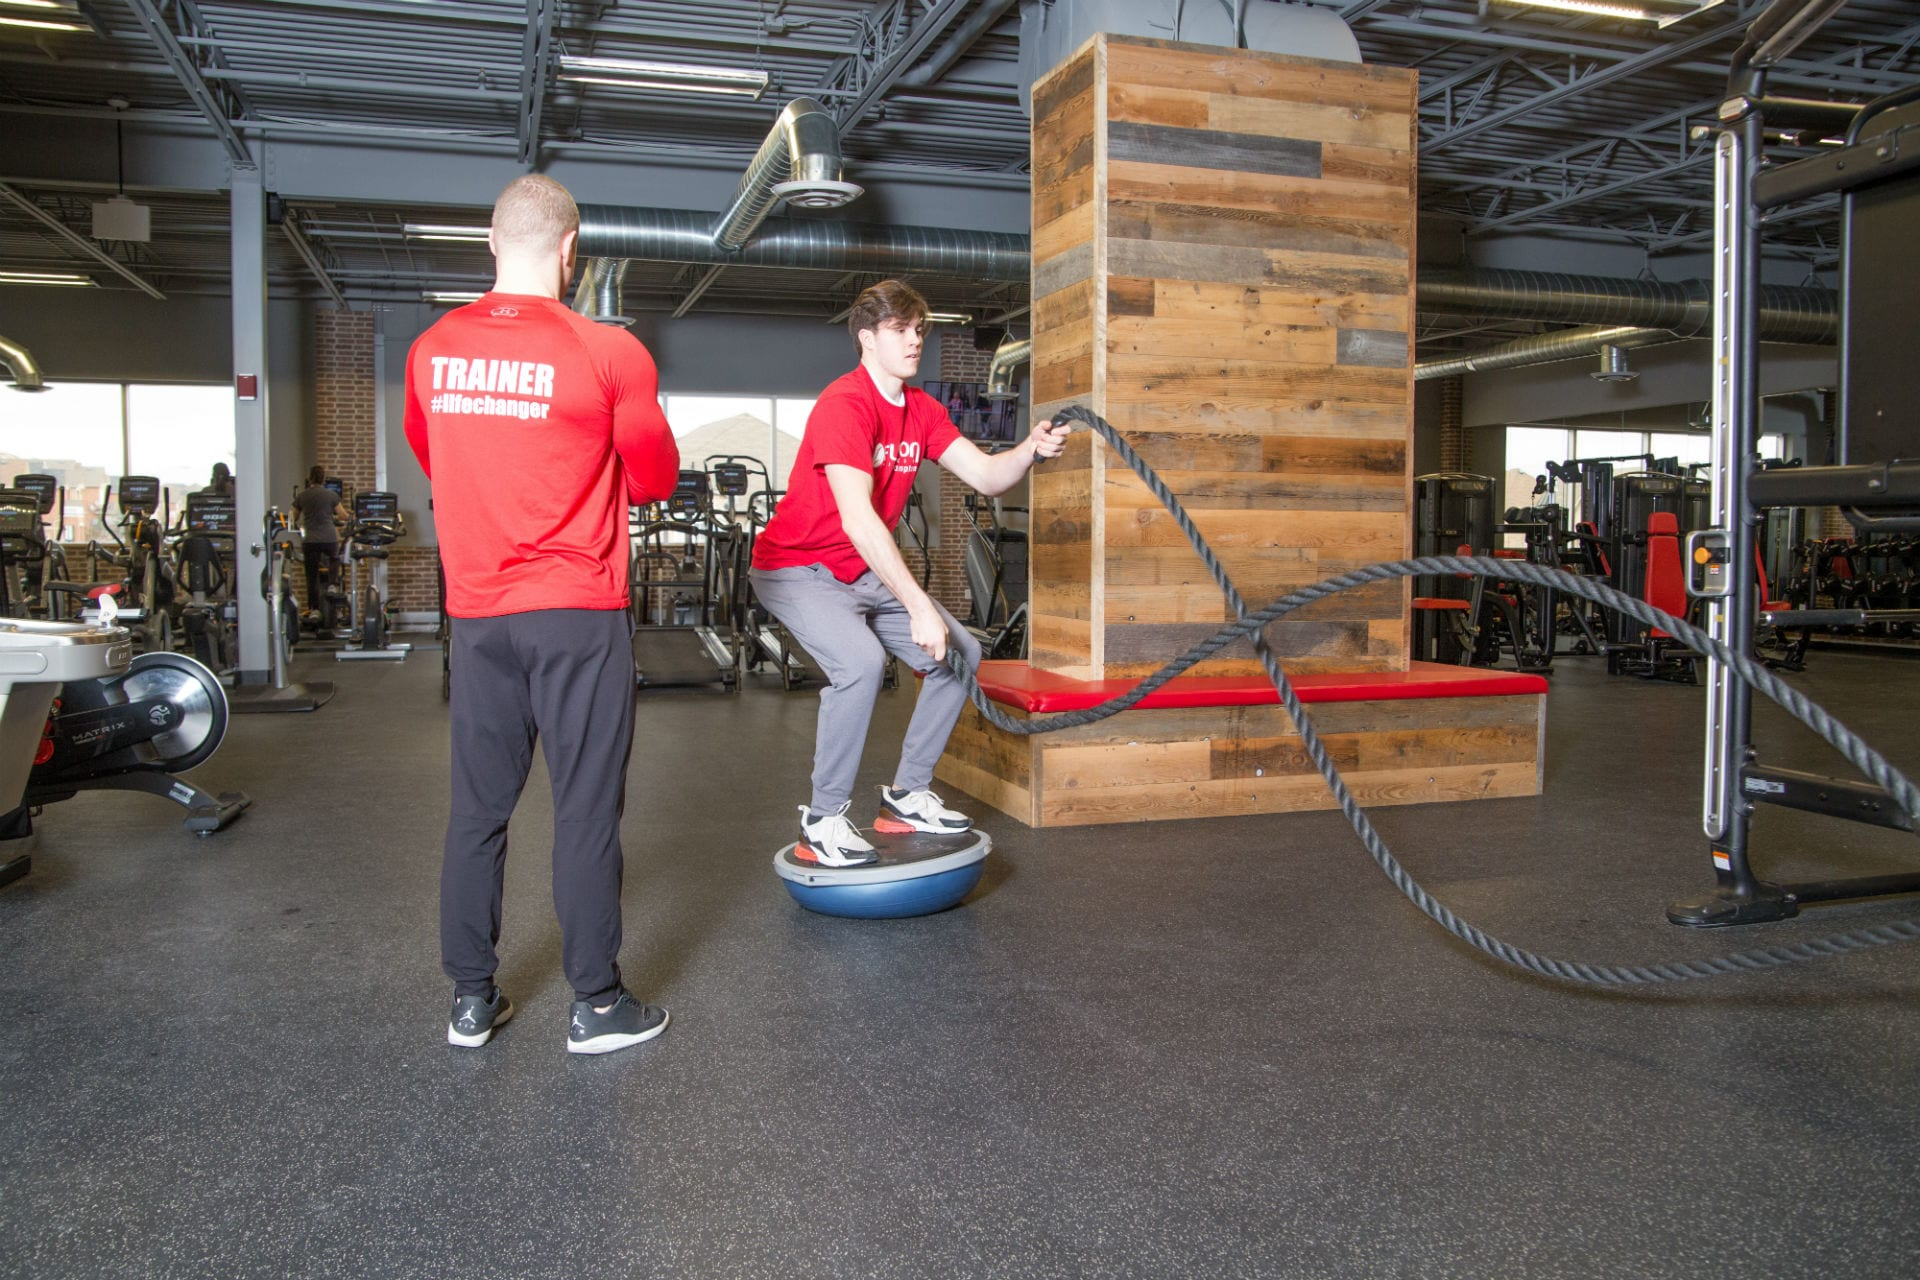 gym member receiving personal training at gym